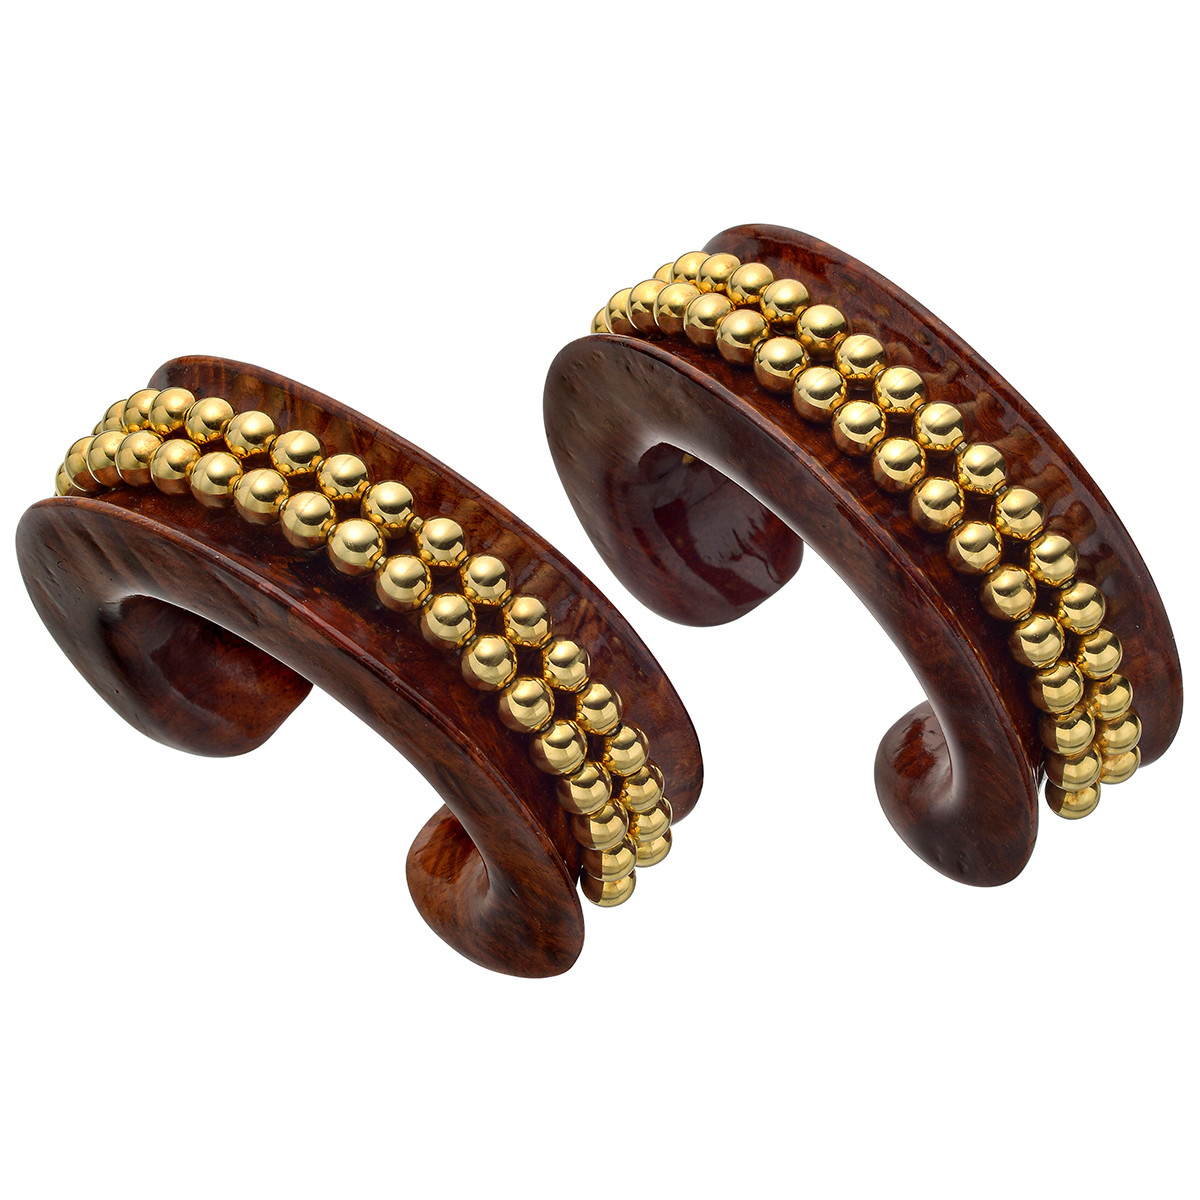 Pair of Vintage Carved Wood & Gold Bead Cuffs